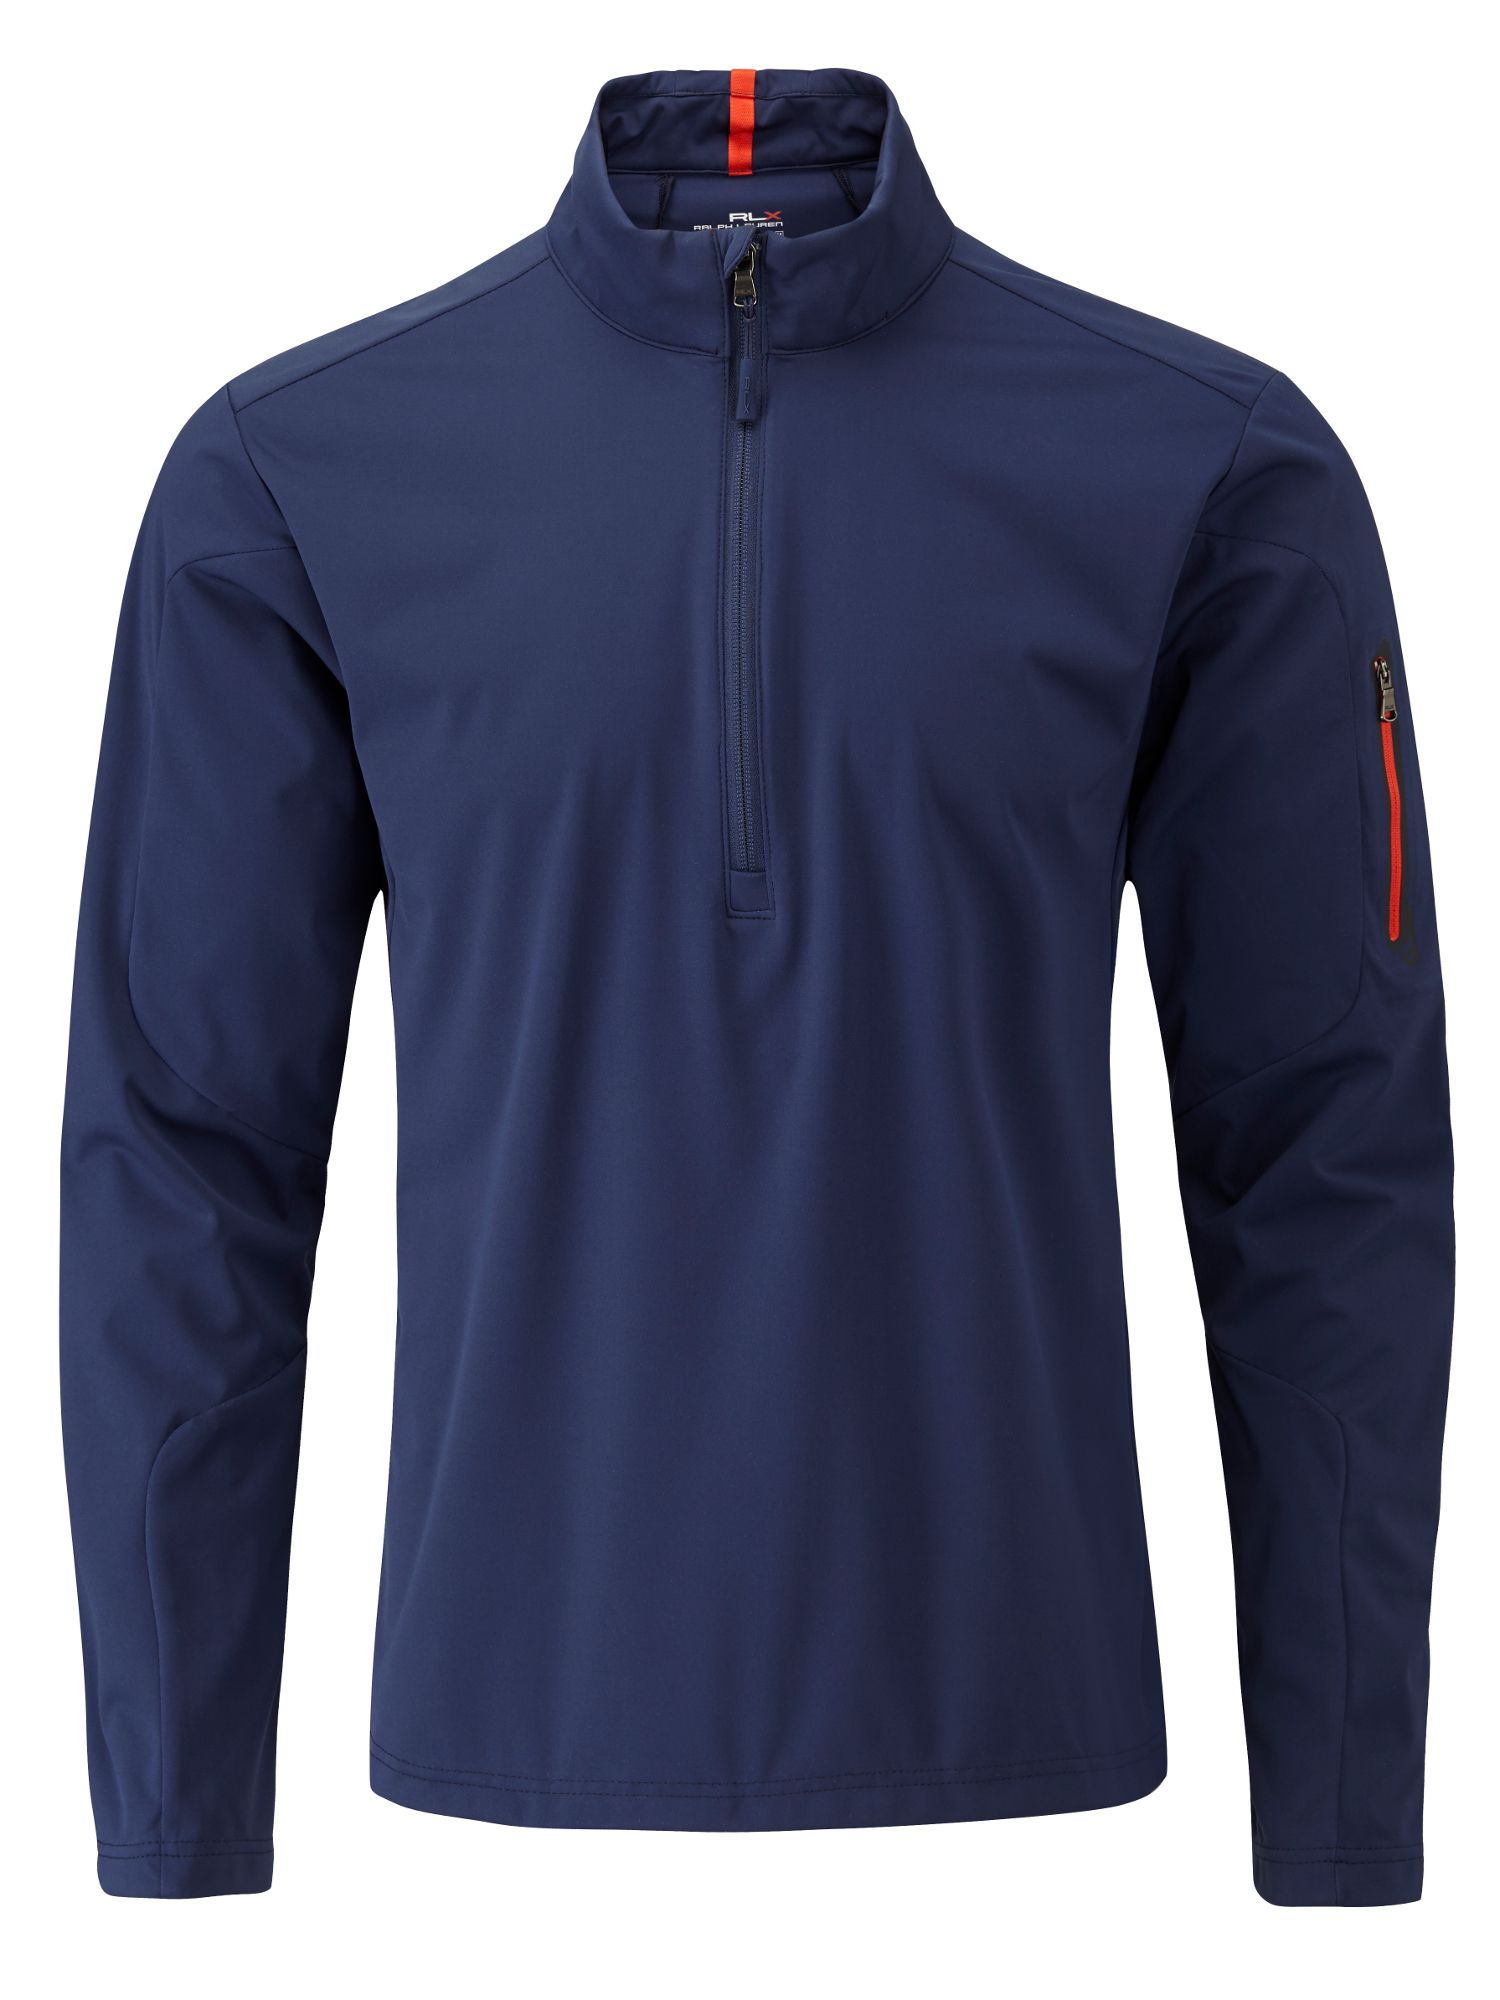 Stratus half zip wind top